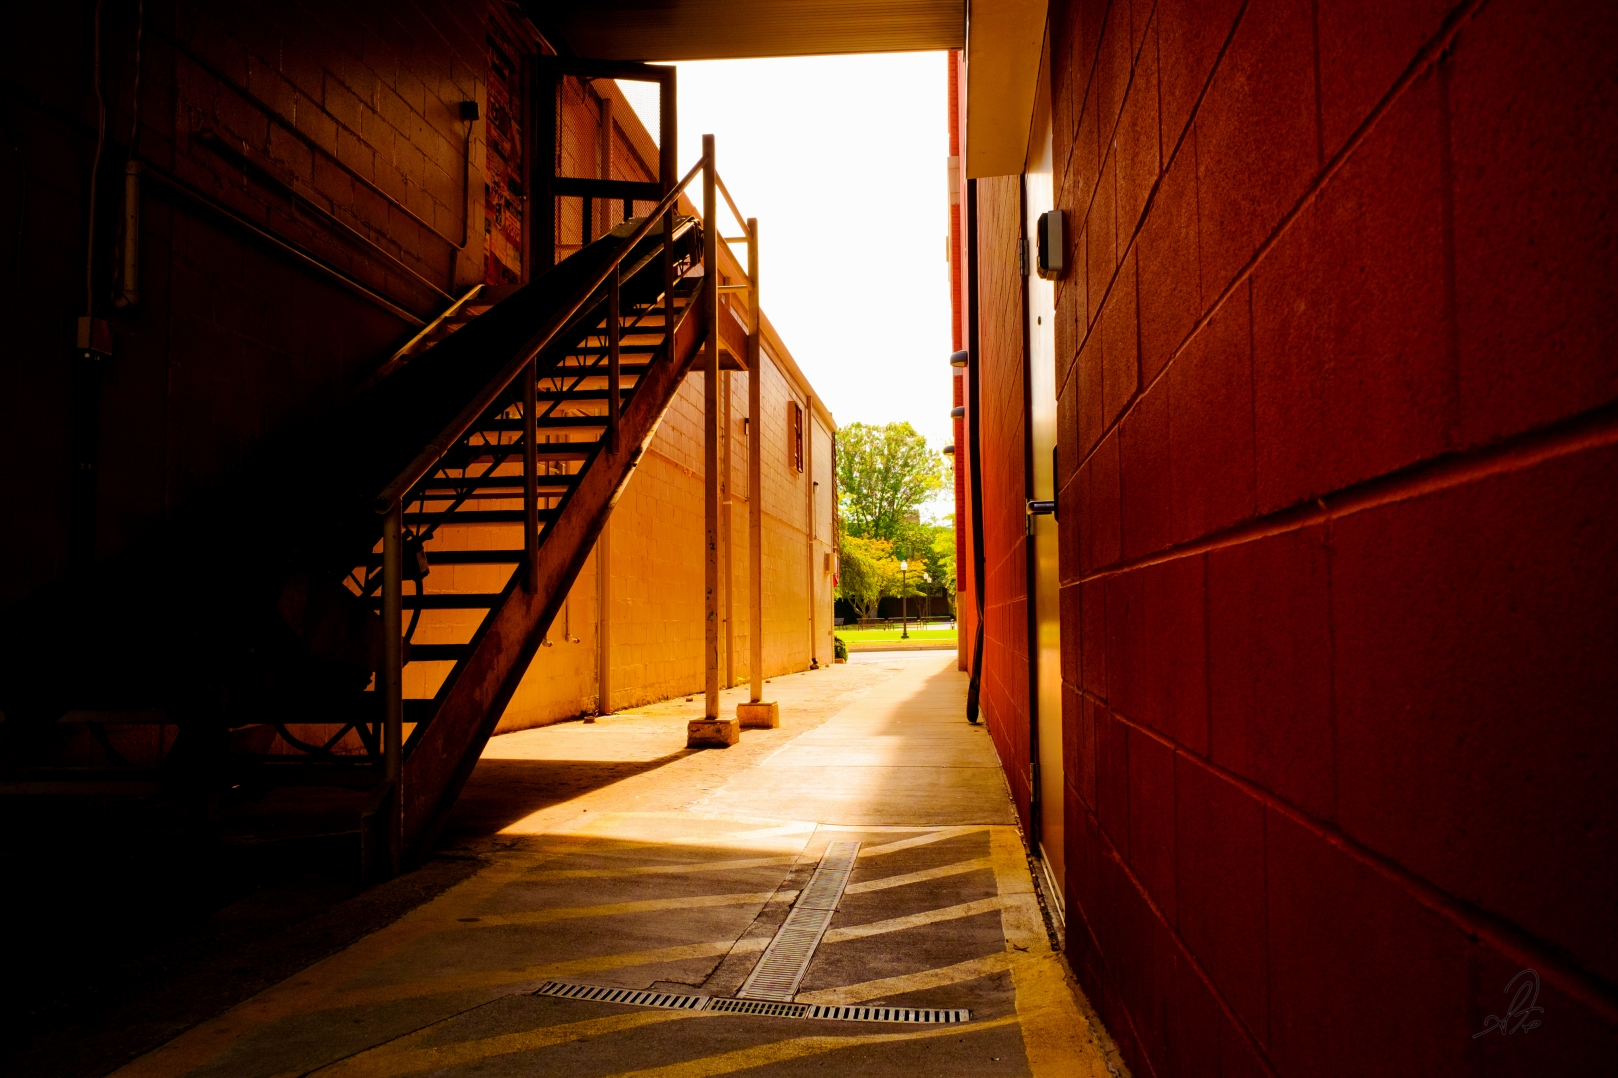 Afternoon Alley Sun